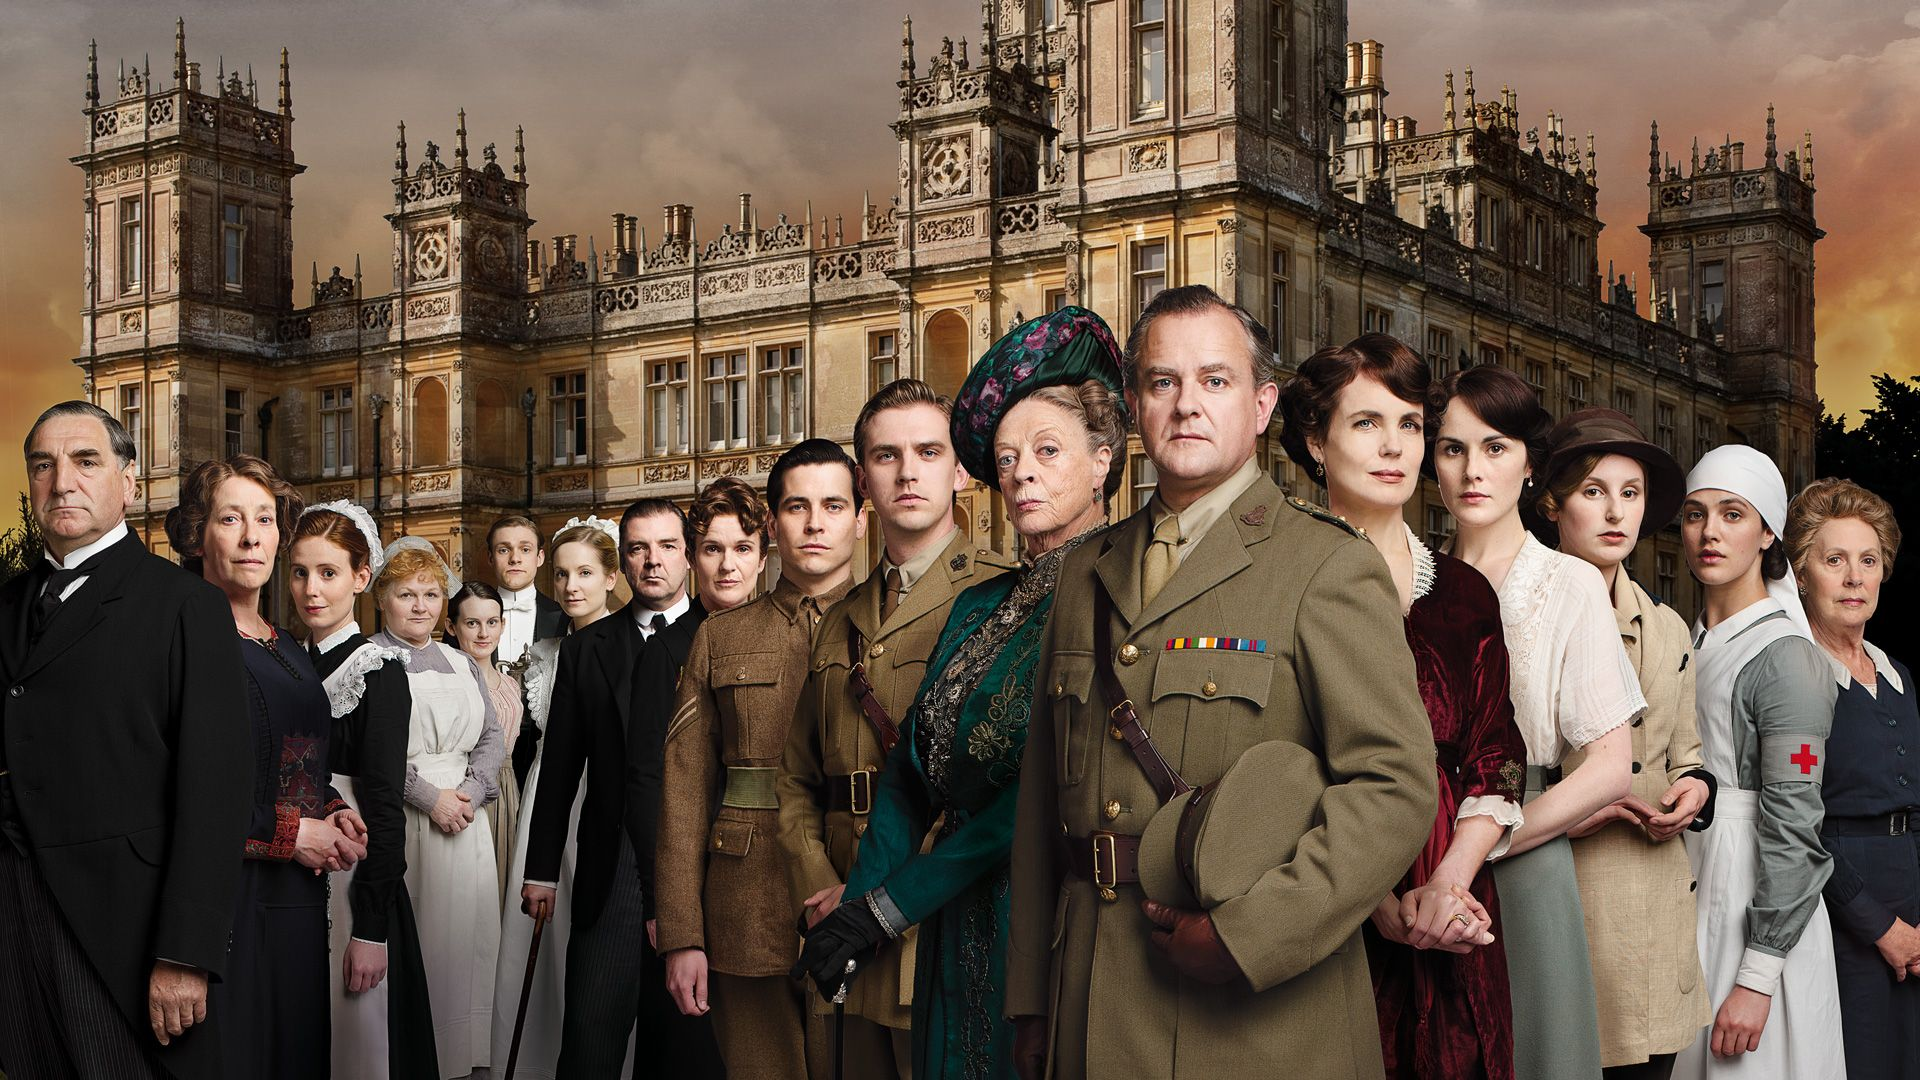 Pin By Suzanne Jager On Tv Movie Downton Abbey Downton Abbey